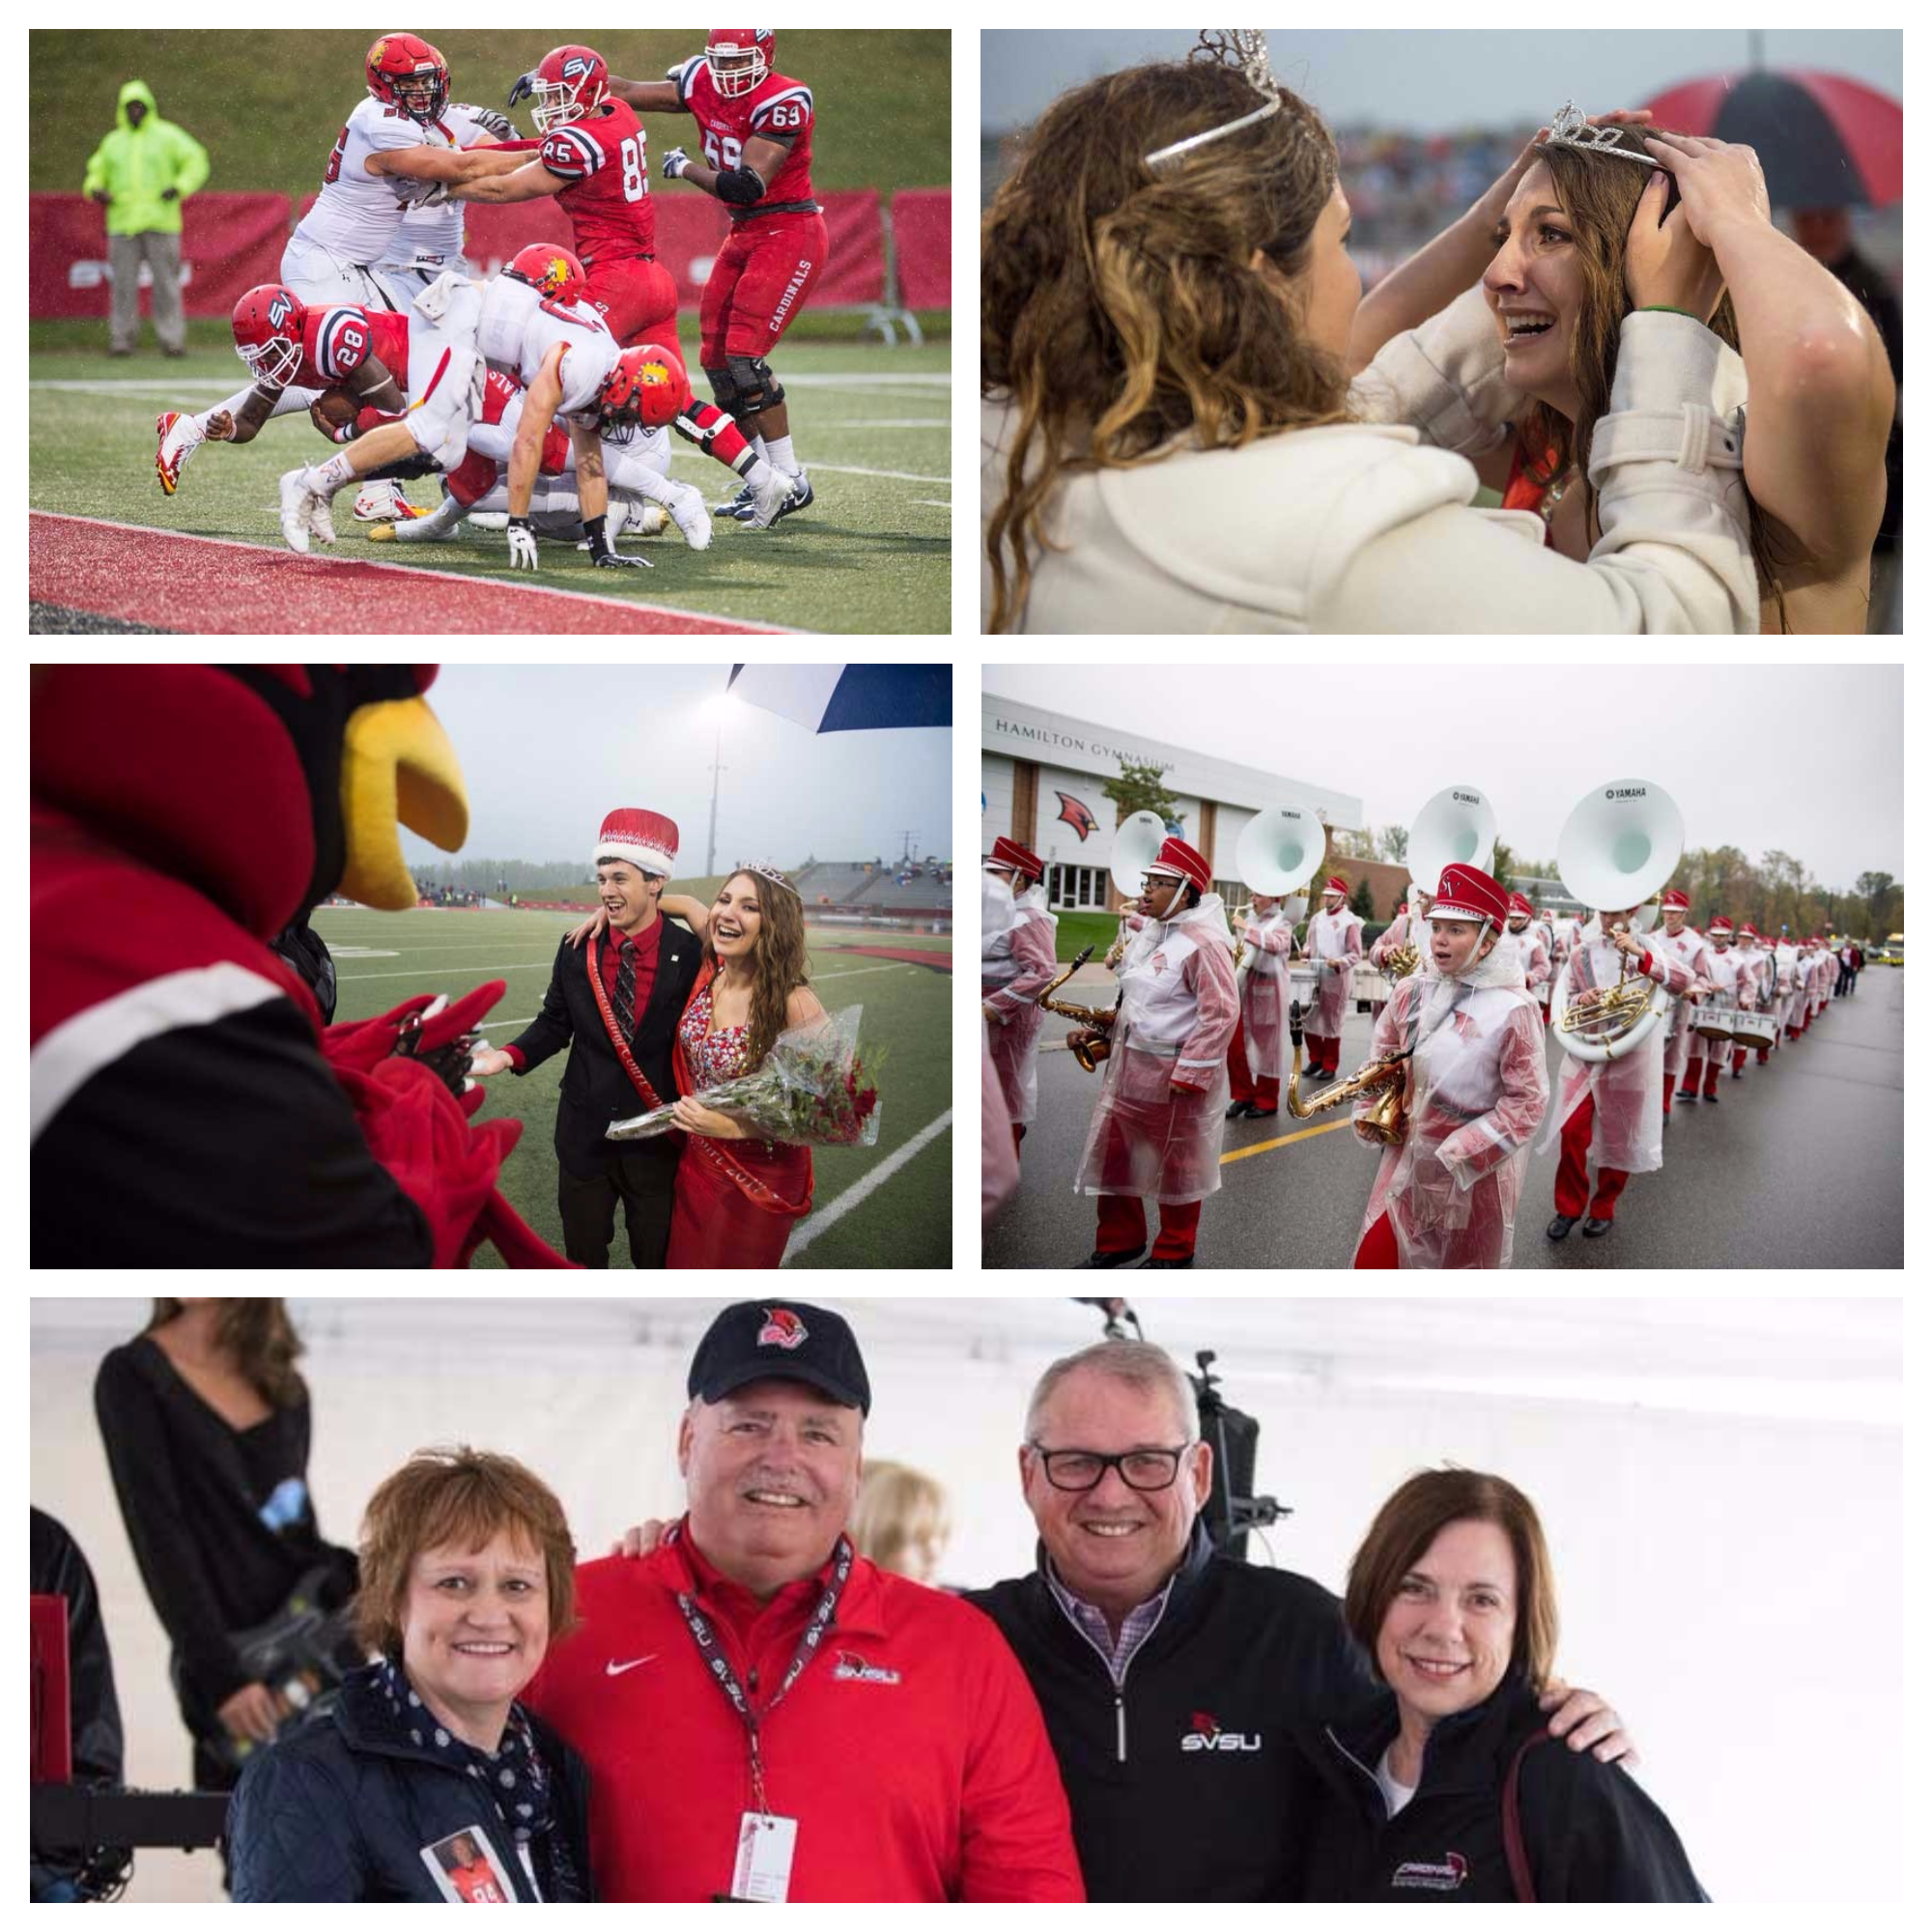 A collage of photos from Homecoming.